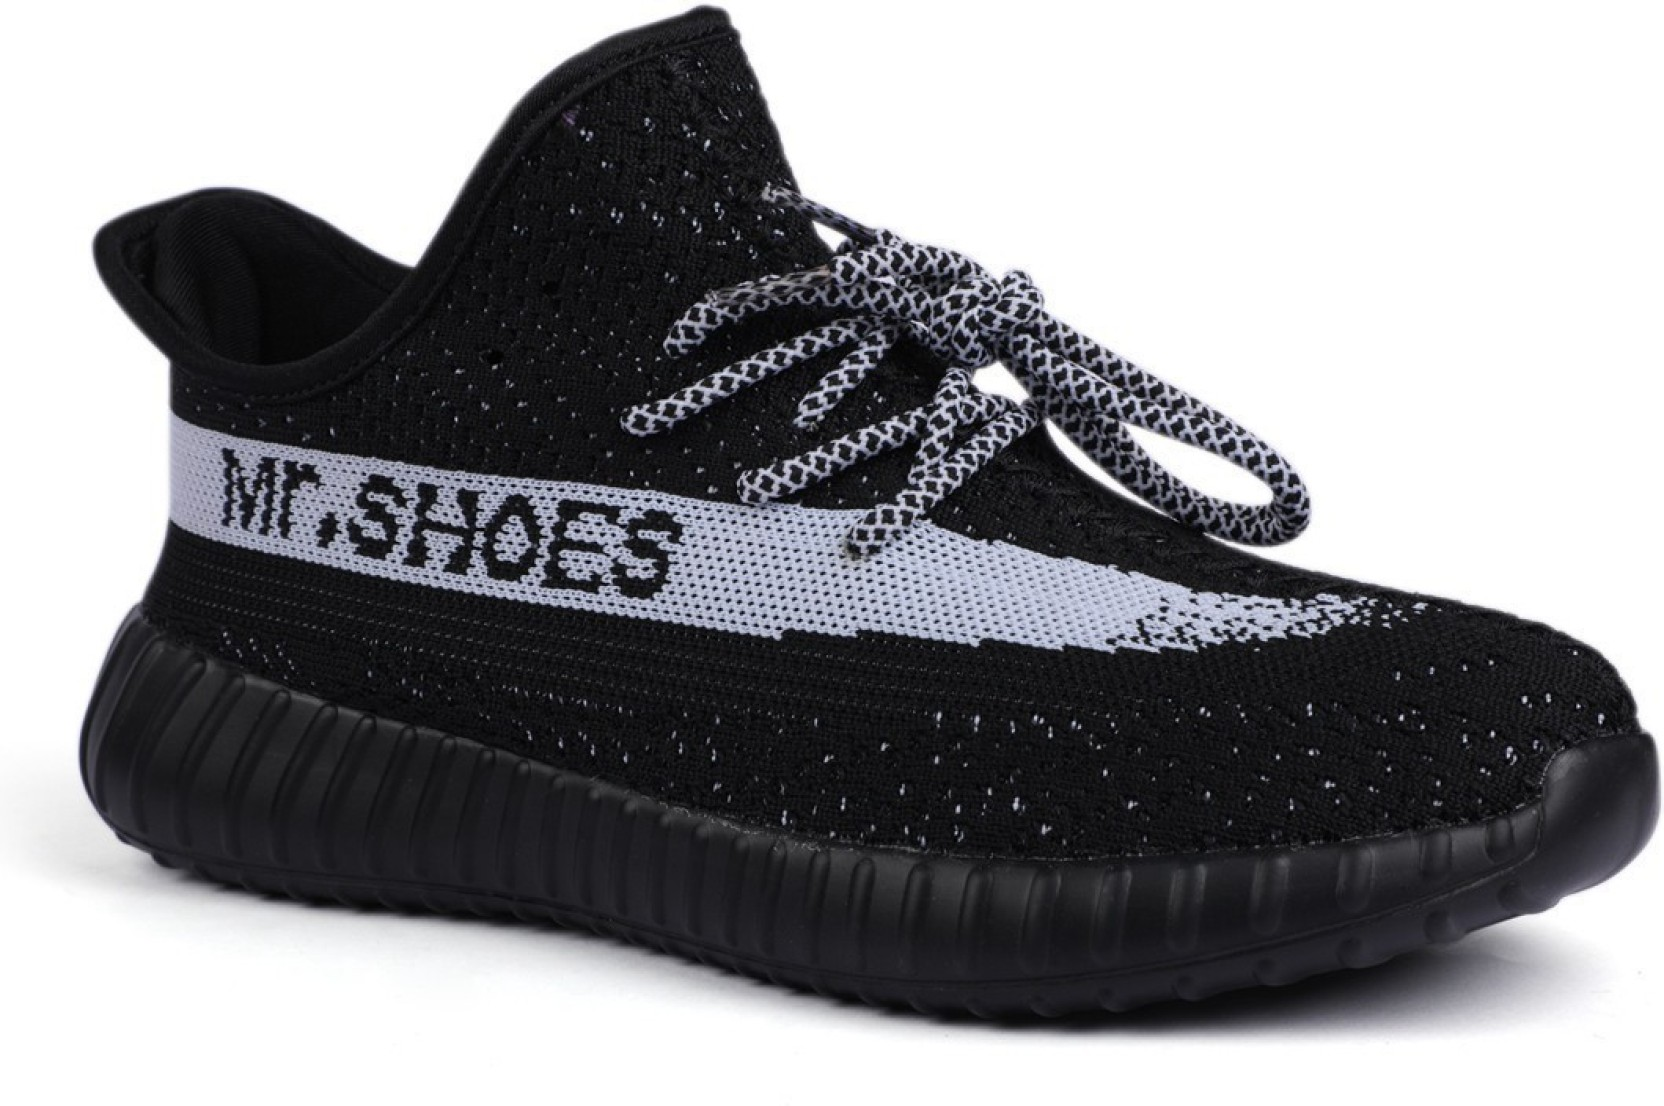 YZY-BLK/WHT BOOST 350 V2 Running Shoes